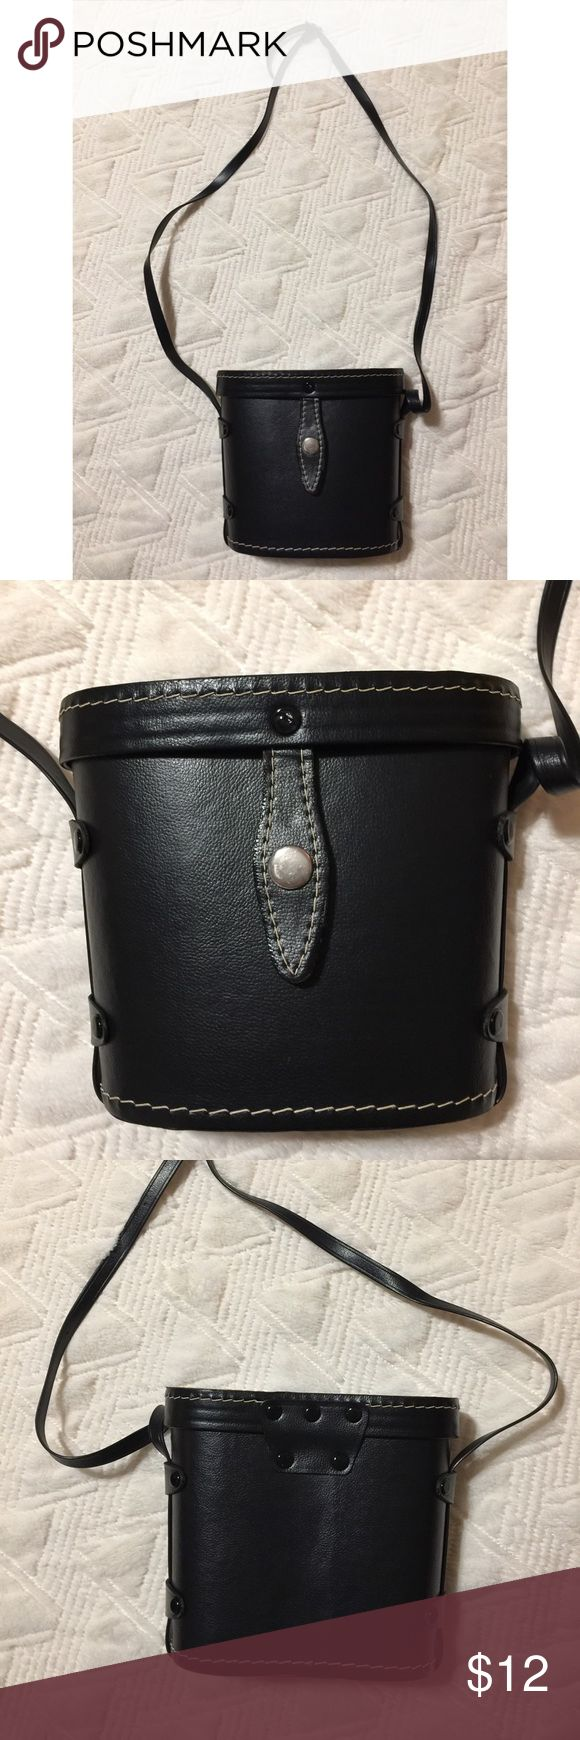 Fritz hauff binocular case vintage / purse This is a vintage fritz hauff case and it's in amazing shape, I think it could make a really cool purse. fritz hauff Bags